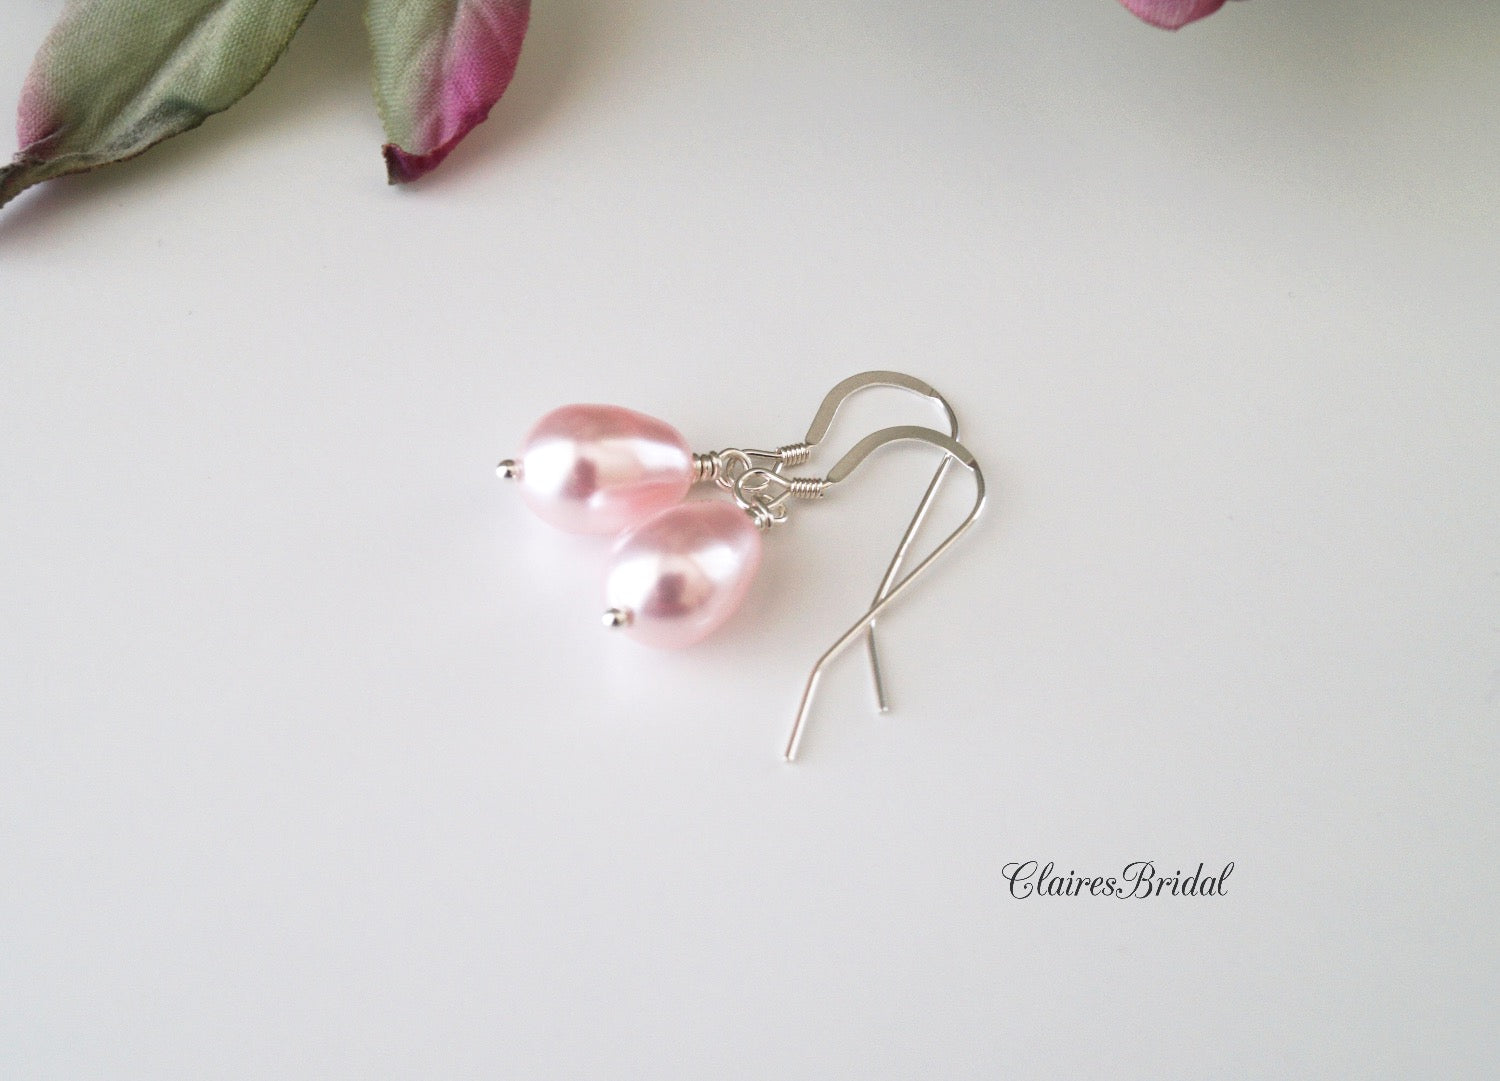 Pink Pearl Drop Earrings, Bridal Earrings, Wedding Jewelry, Swarovski Pearl Earrings - ClairesBridal - 3